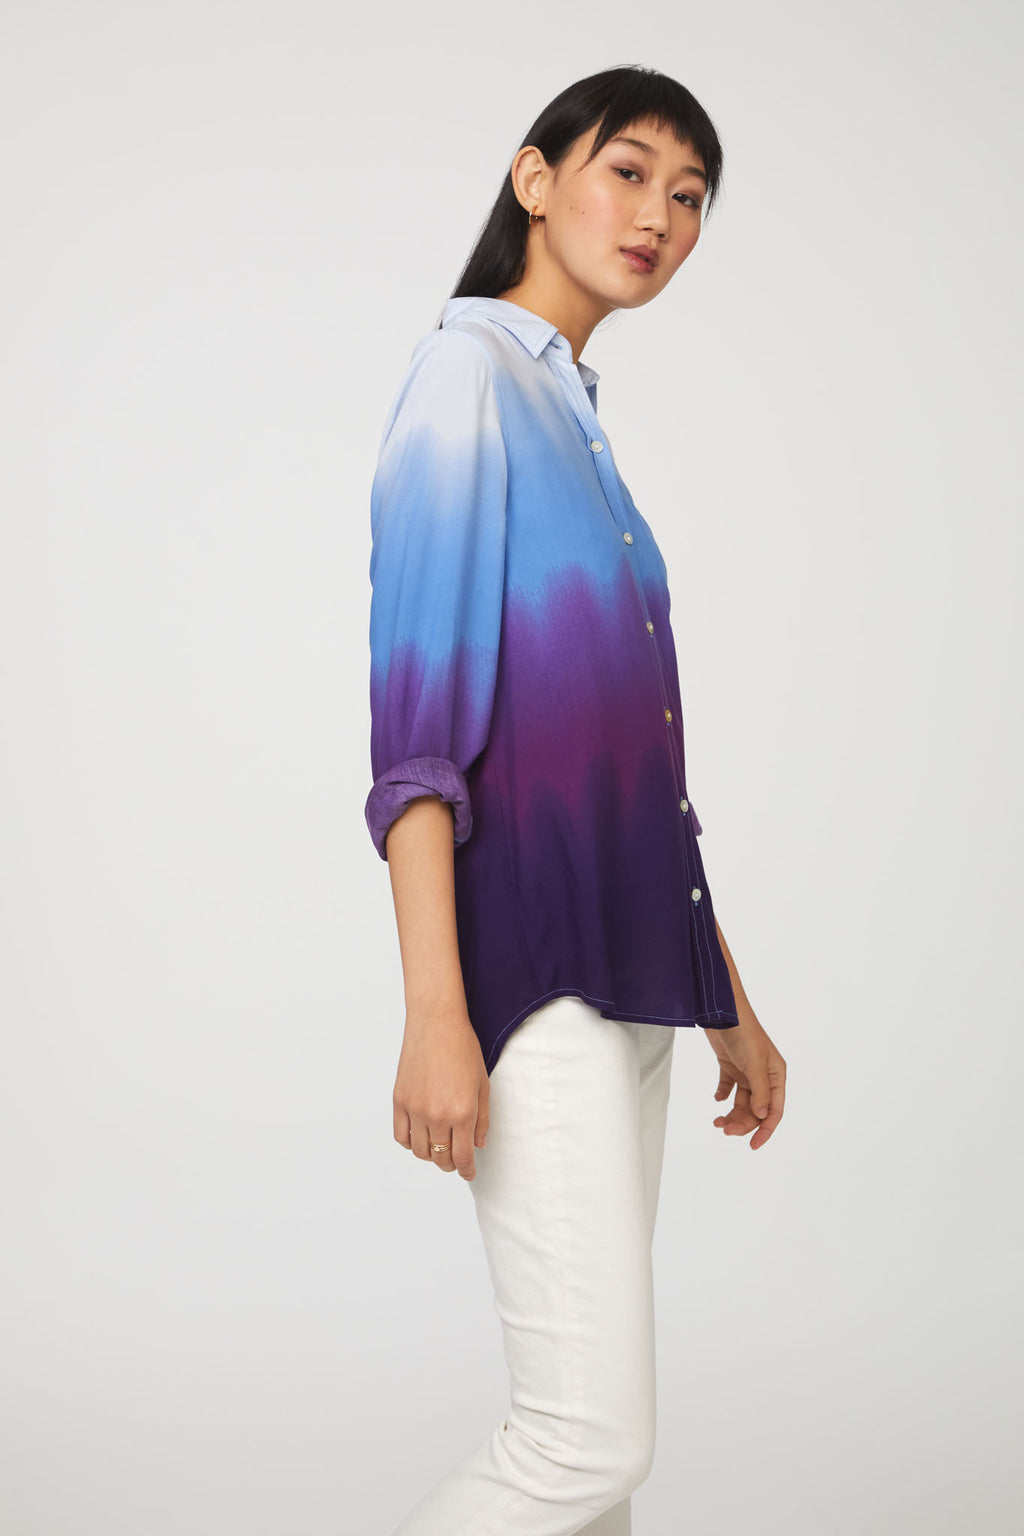 side view of woman wearing a long sleeve, button-down, blue and purple dip dye shirt